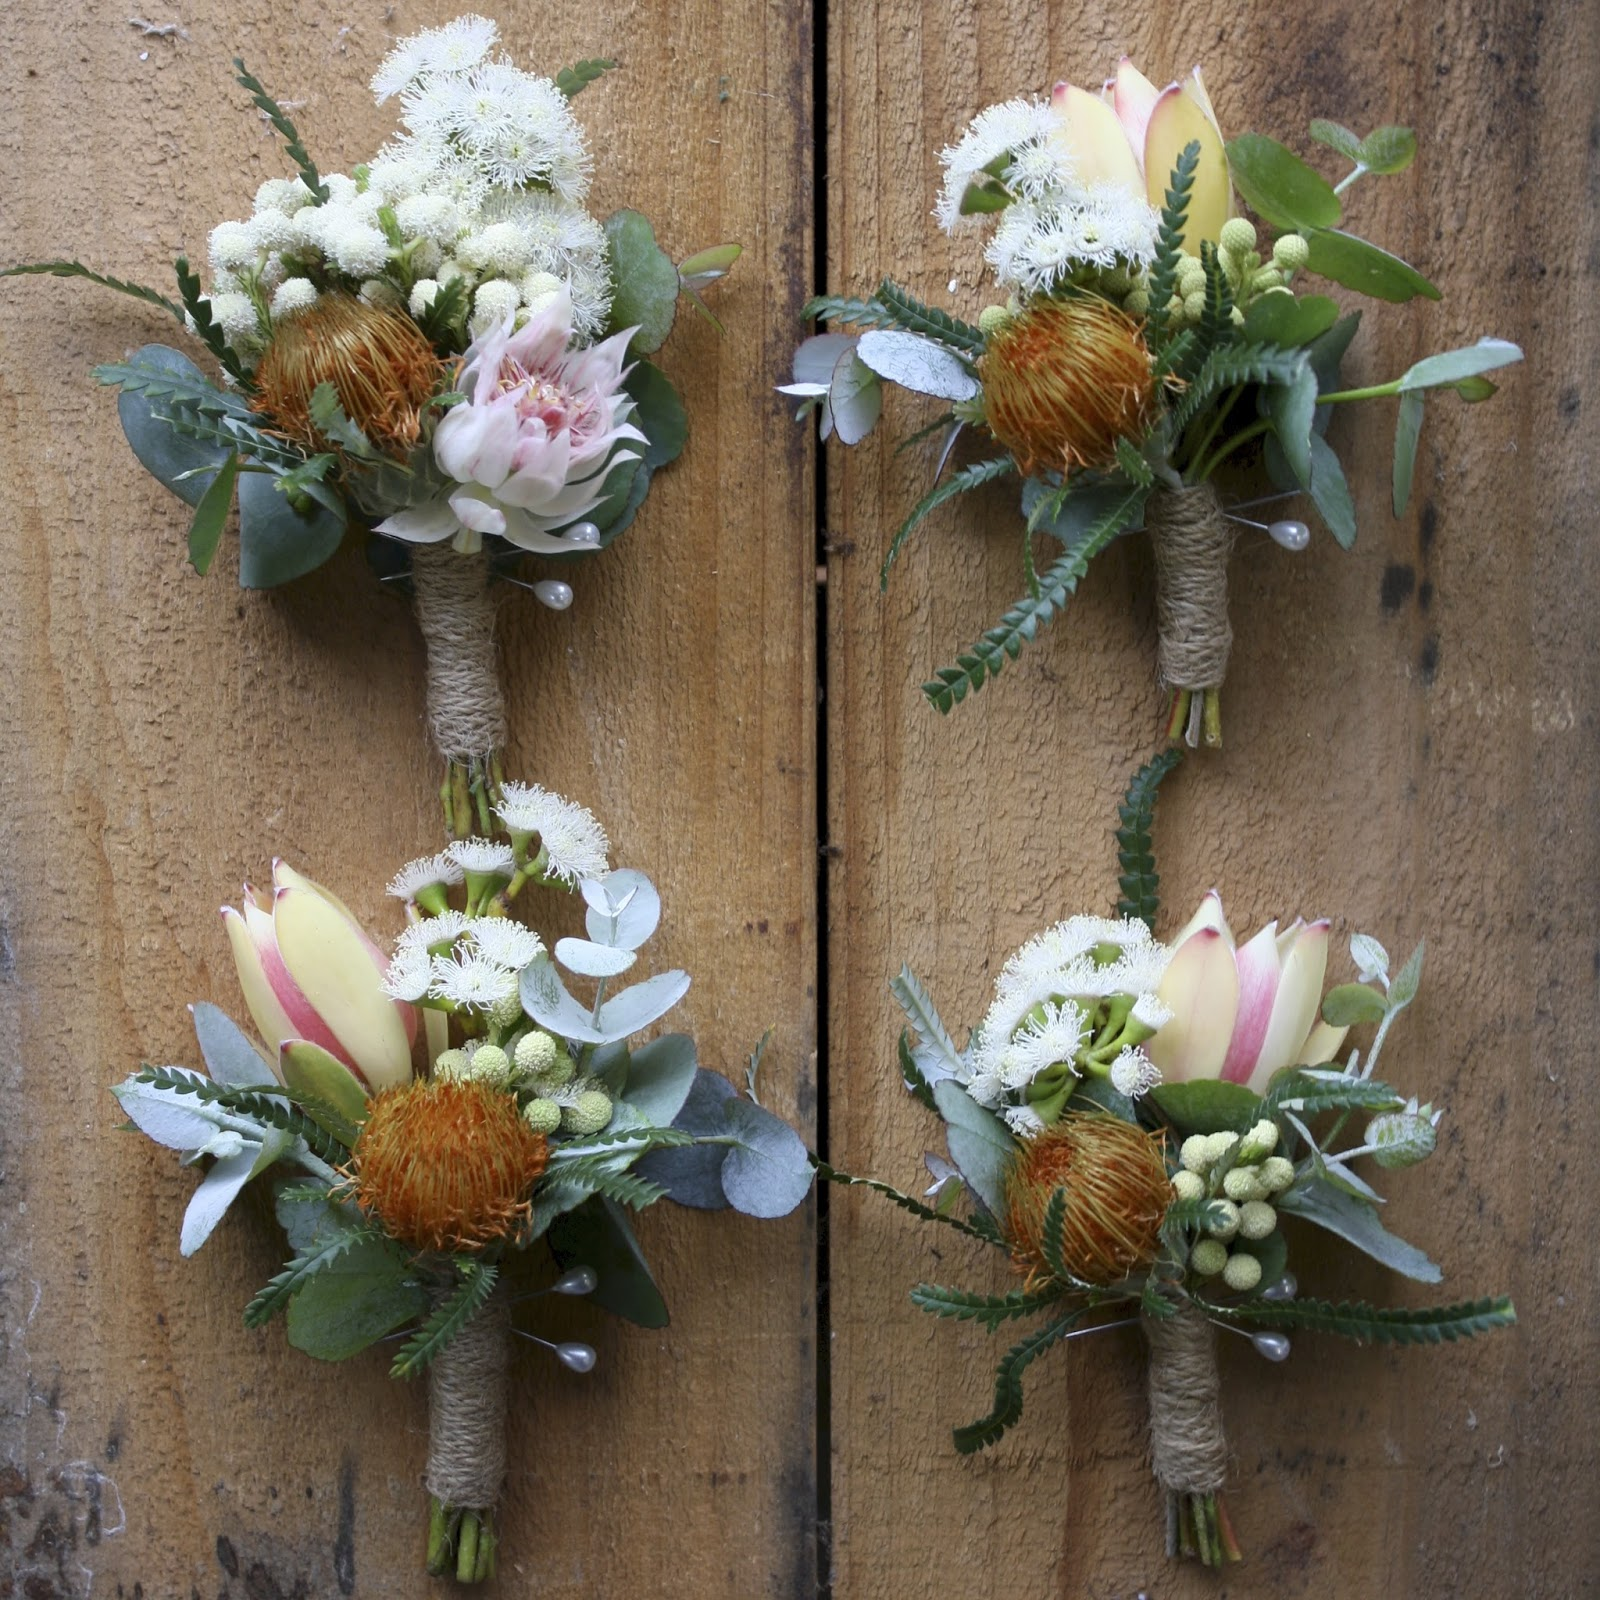 Swallows nest farm native november wedding in soft blush colours some fluffy white flowering gum makes an appearance too dryandra are great for boutonnieres and just imagine these on a blue suit great colour mightylinksfo